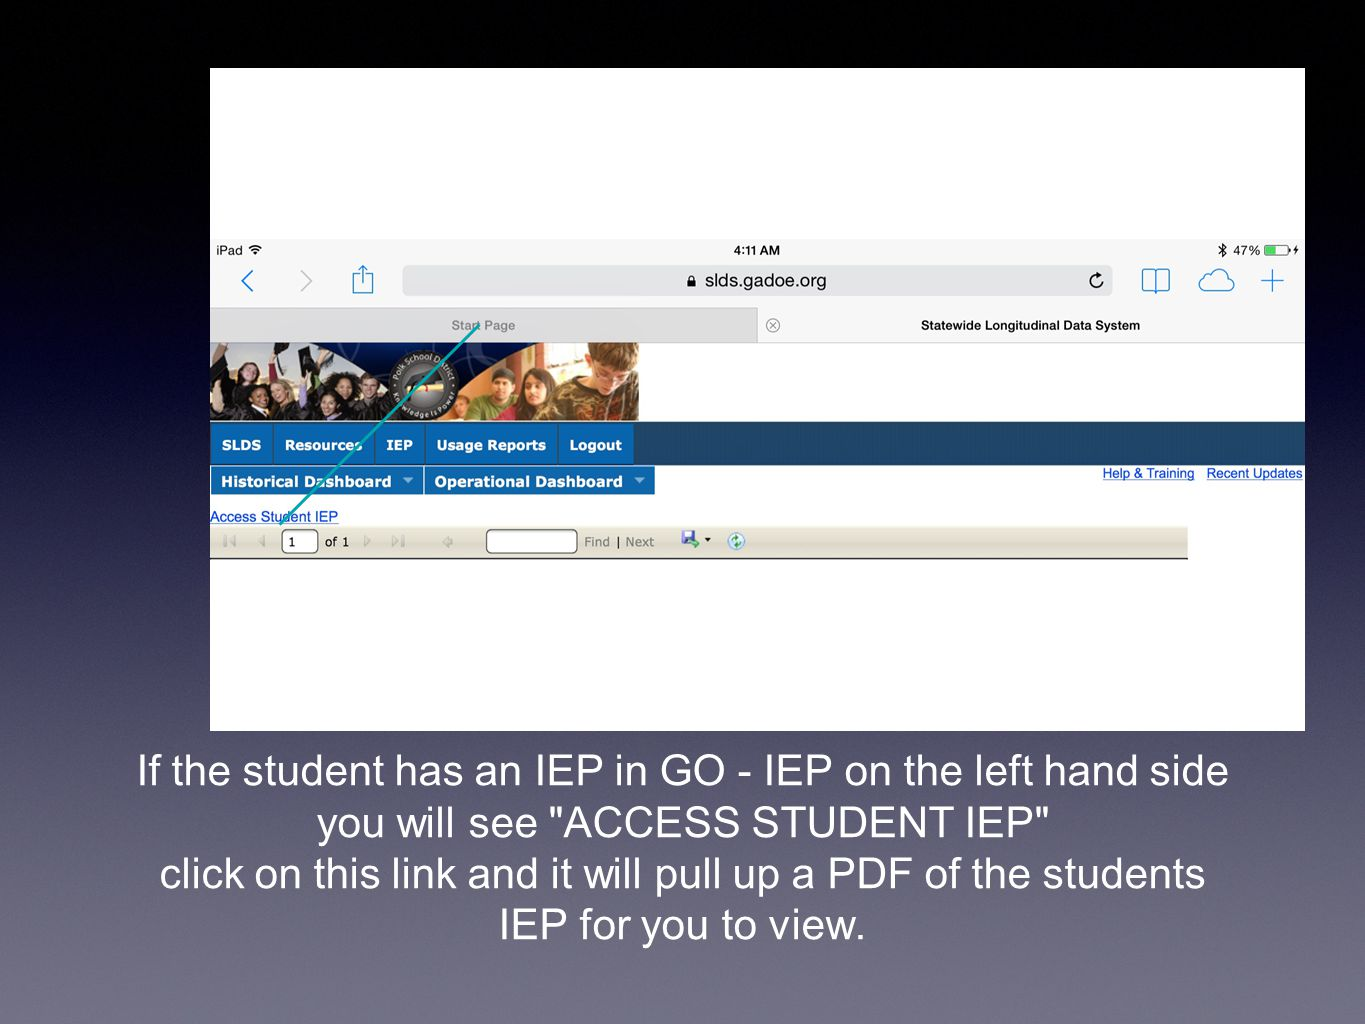 If the student has an IEP in GO - IEP on the left hand side you will see ACCESS STUDENT IEP